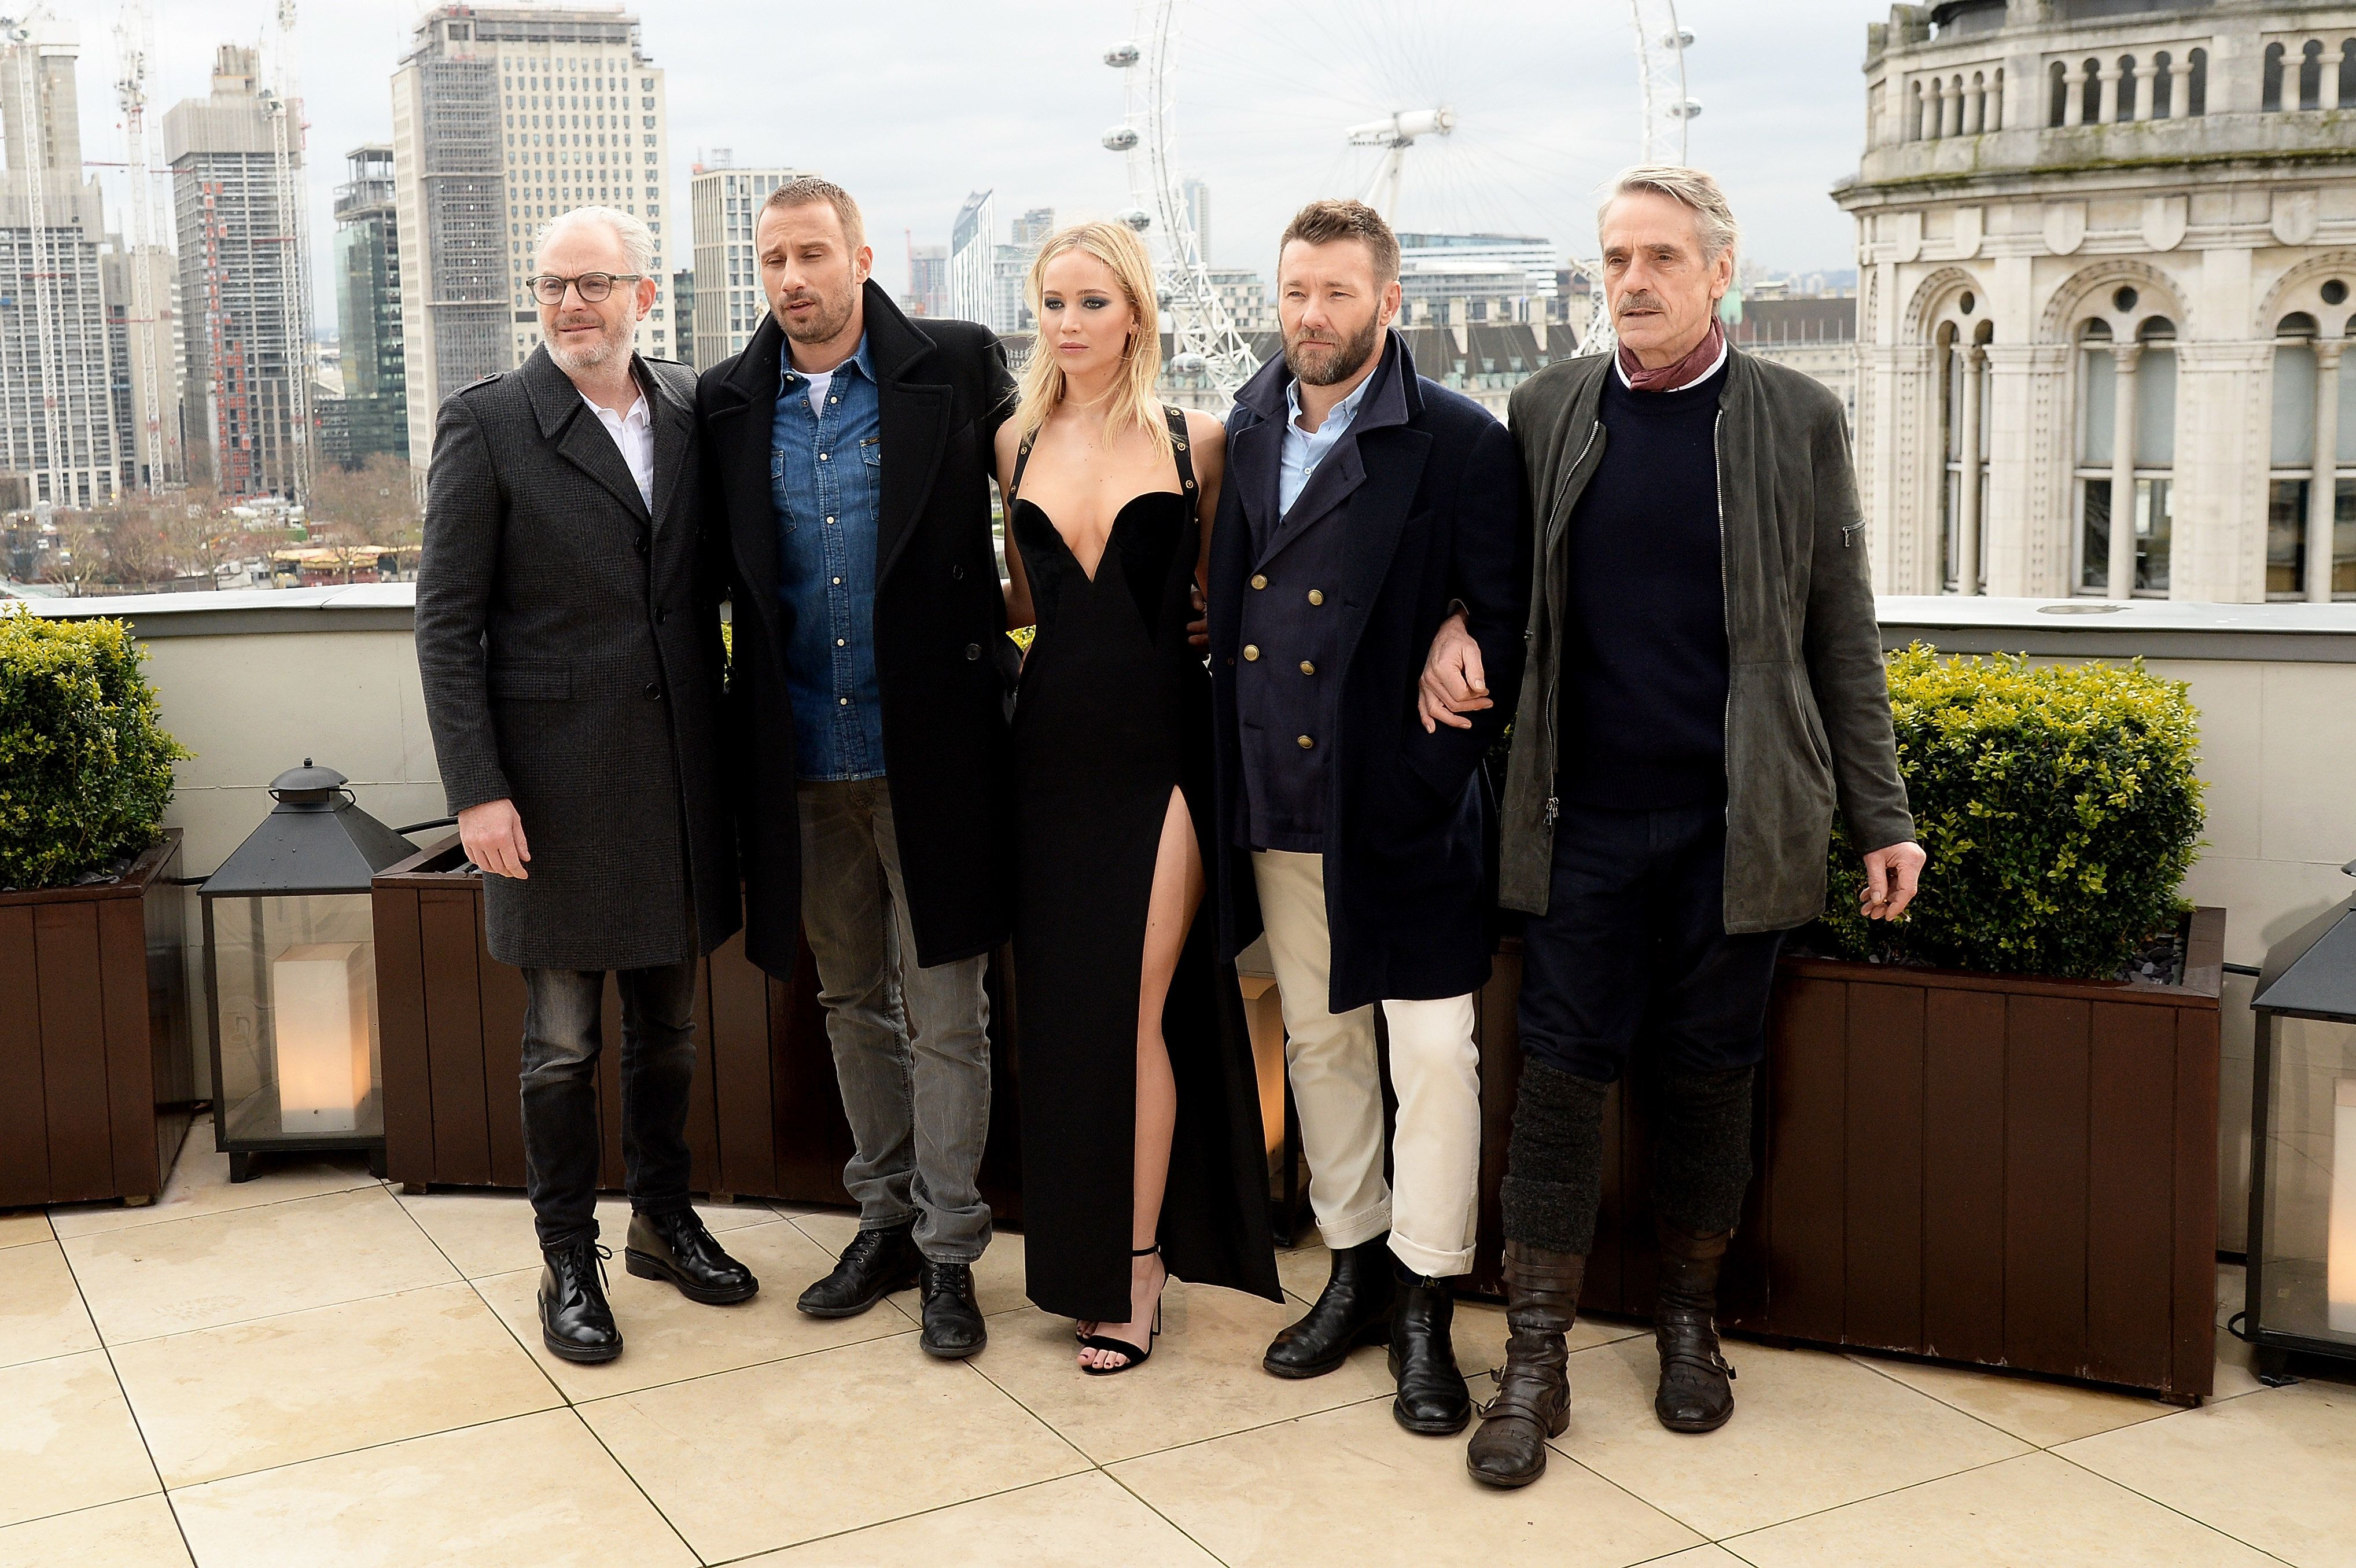 LONDON, ENGLAND - FEBRUARY 20:  (L-R)  Director Francis Lawrence, Matthias Schoenaerts, Jennifer Lawrence, Joel Edgerton and Jeremy Irons attend the 'Red Sparrow' photocall at The Corinthia Hotel on February 20, 2018 in London, England.  (Photo by Dave J Hogan/Dave J Hogan/Getty Images)